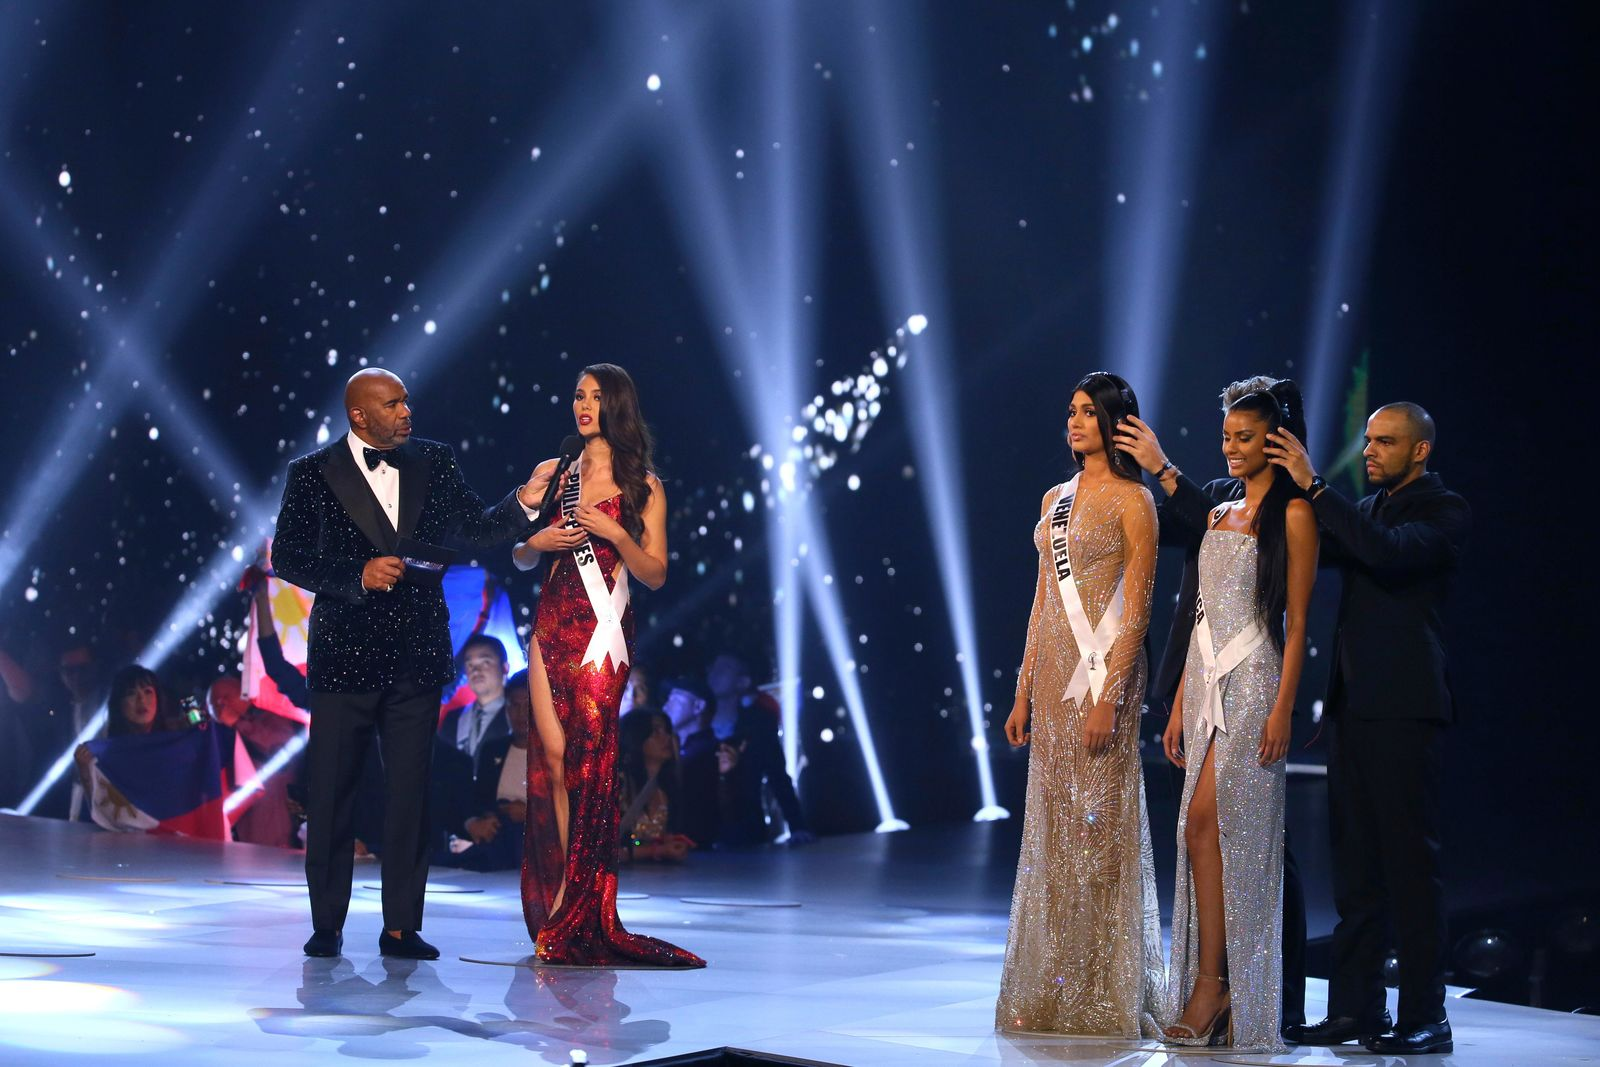 Miss Philippines Catriona Gray, second from left, is interviewed by the host during the final of 67th Miss Universe competition in Bangkok, Thailand, Monday, Dec. 17, 2018.(AP Photo/Gemunu Amarasinghe)